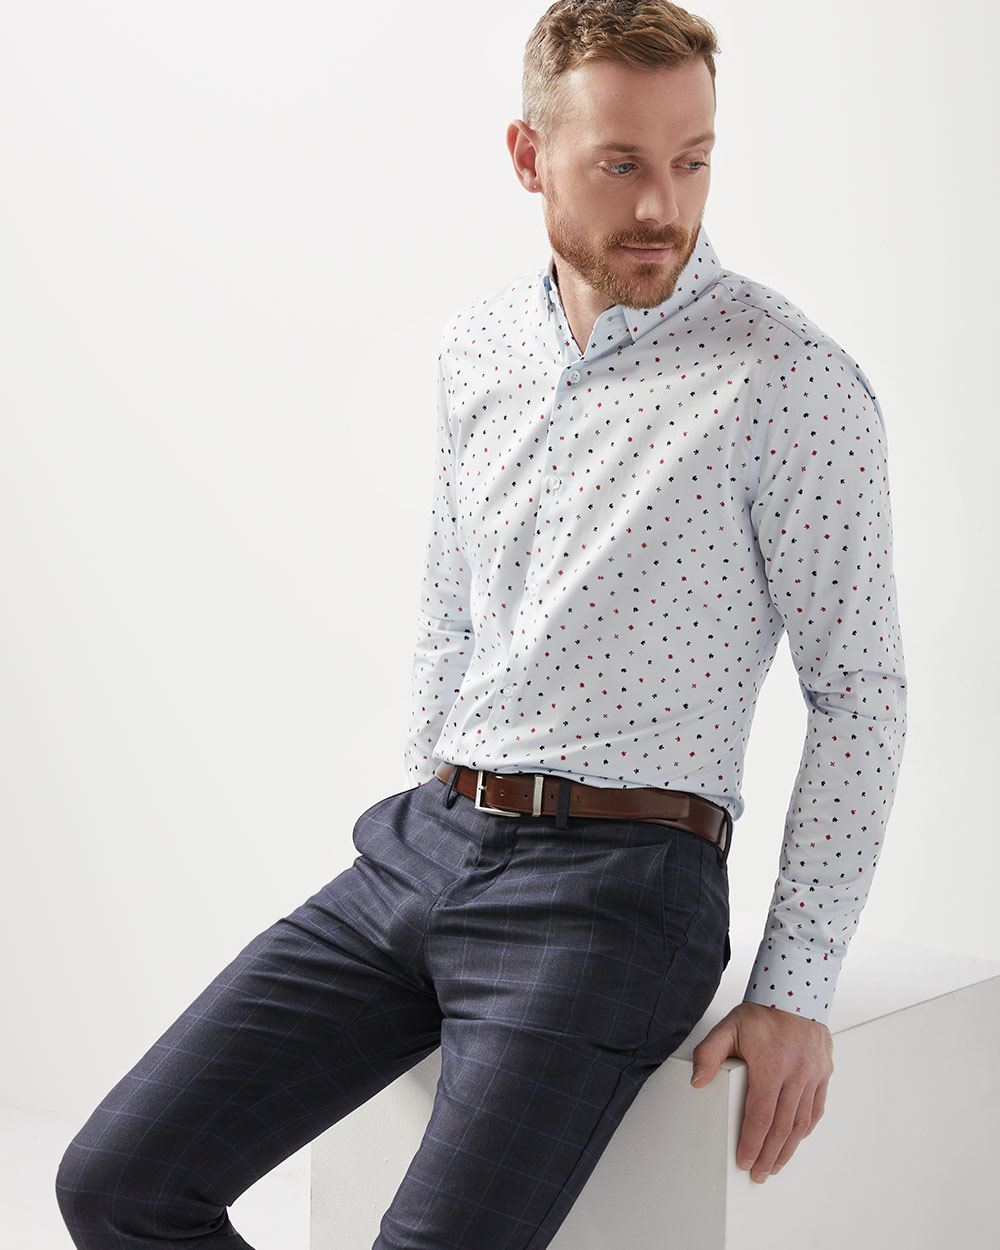 Tailored Fit Puzzle Piece Dress Shirt Rwco